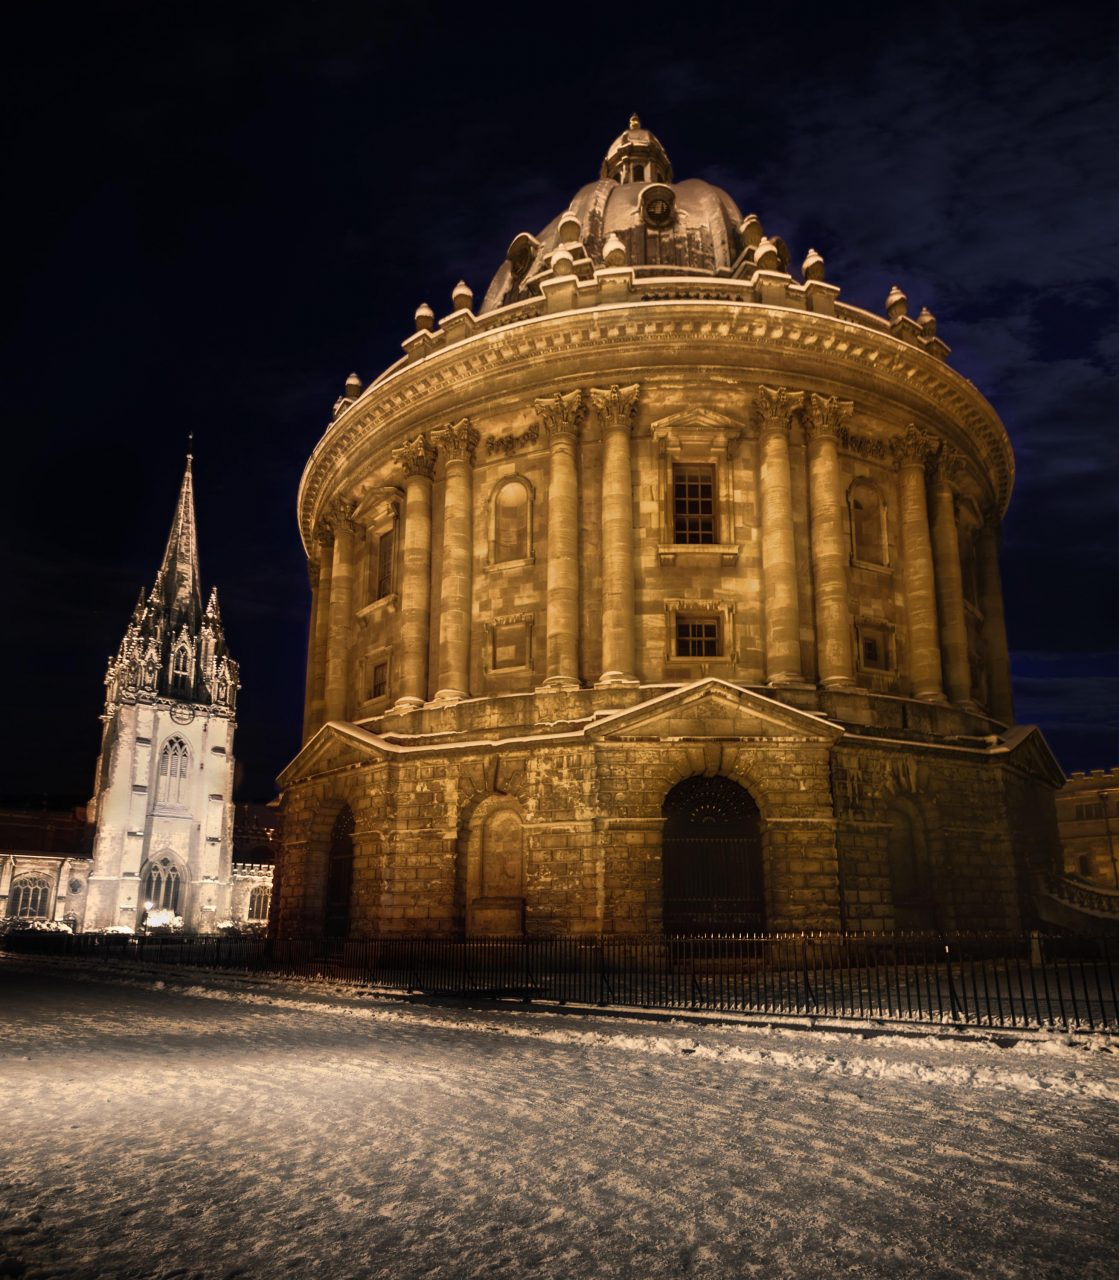 radcliffe_camera-pano1